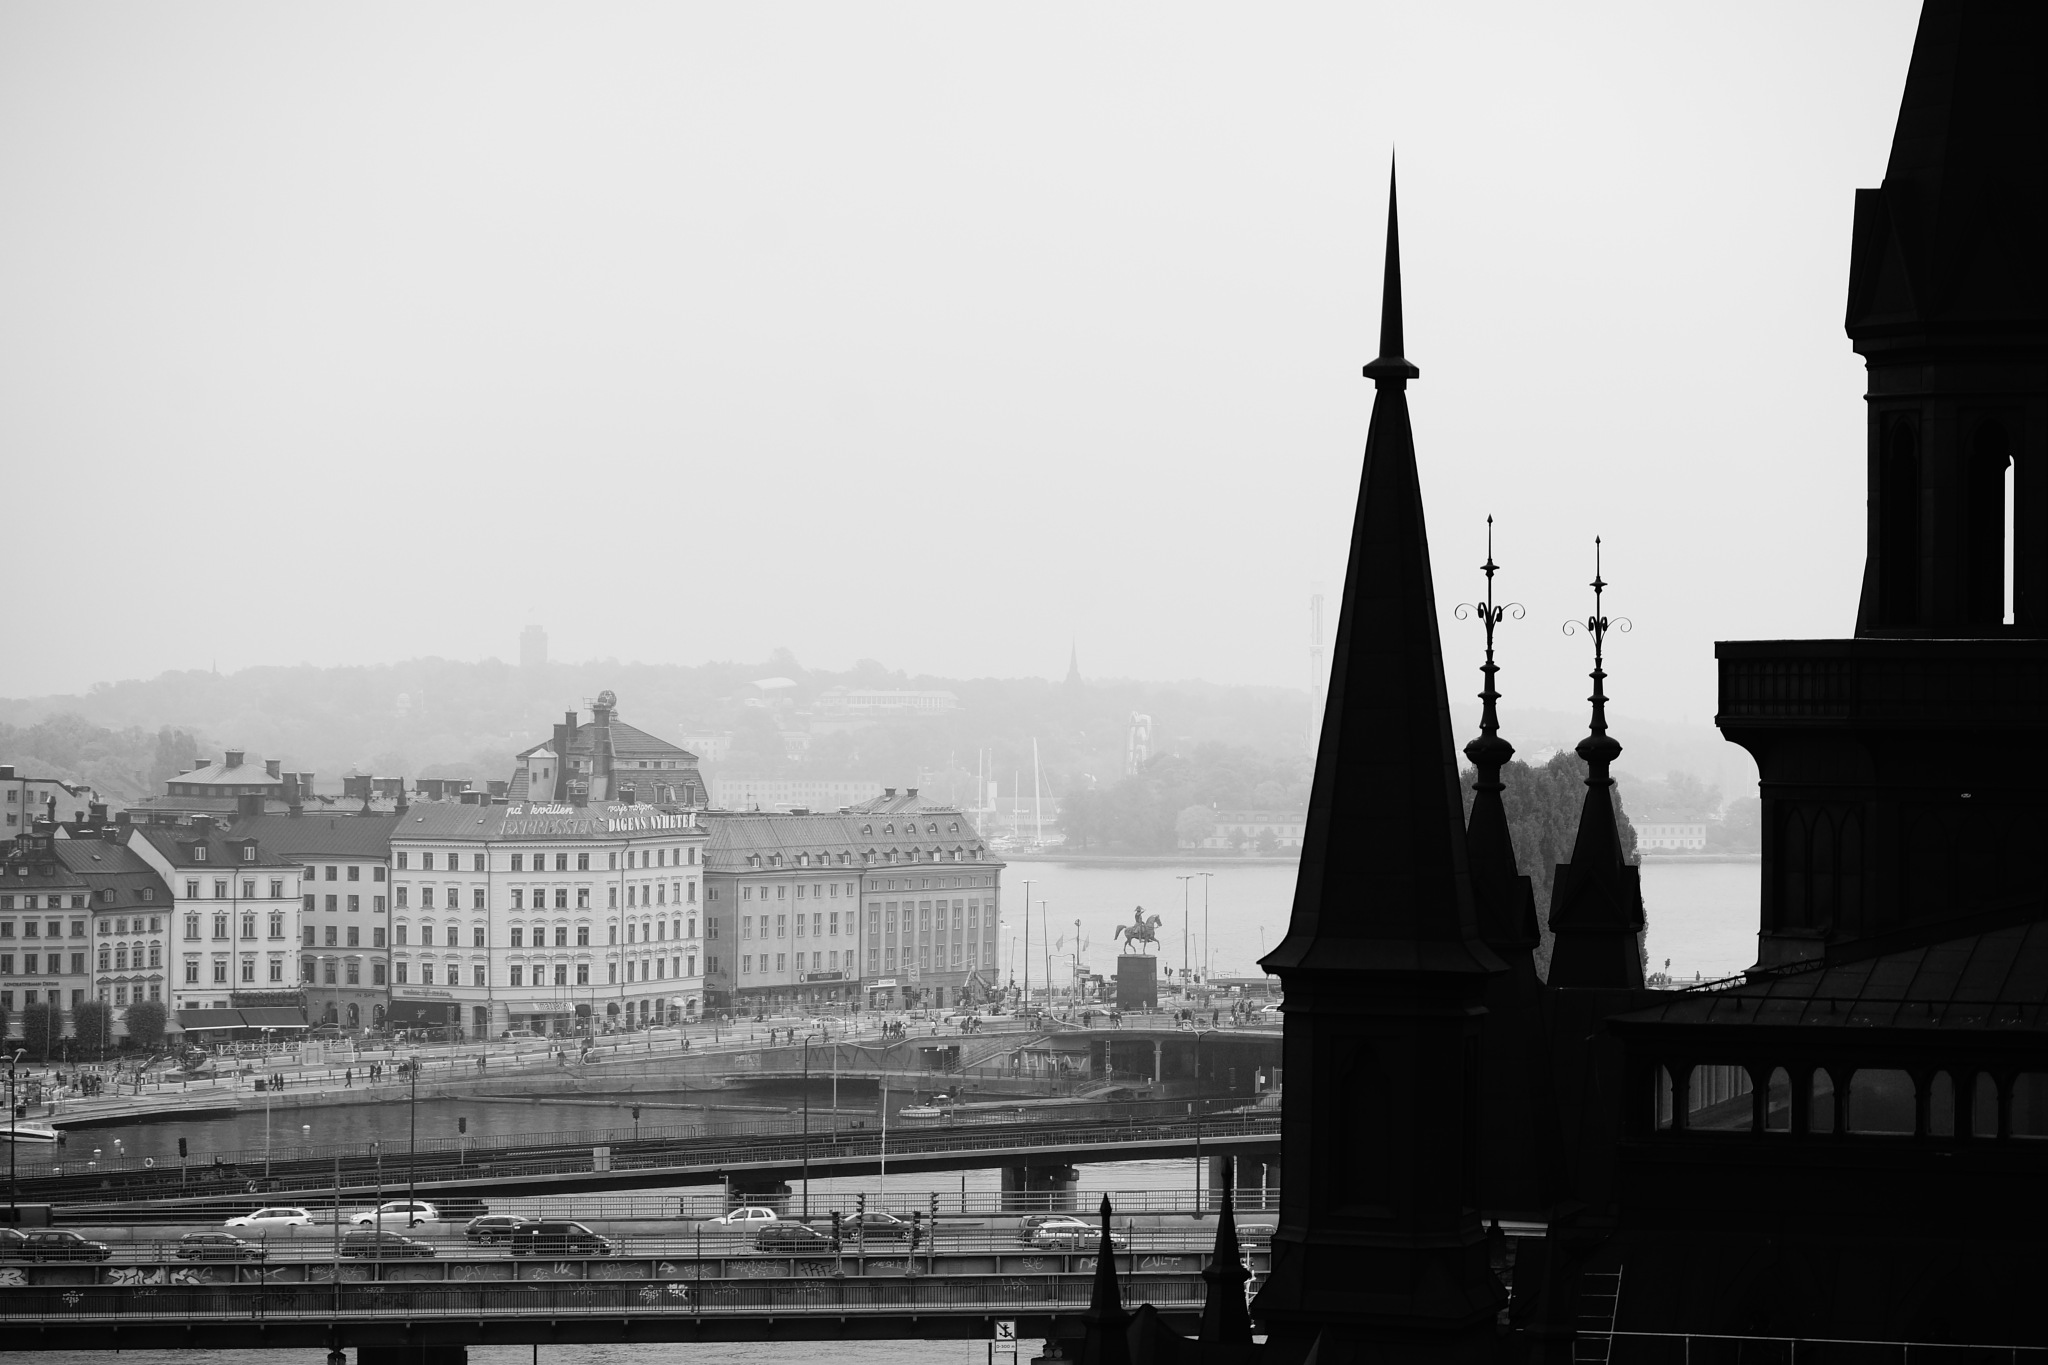 Stockholm 1 by Andreas Karlsson